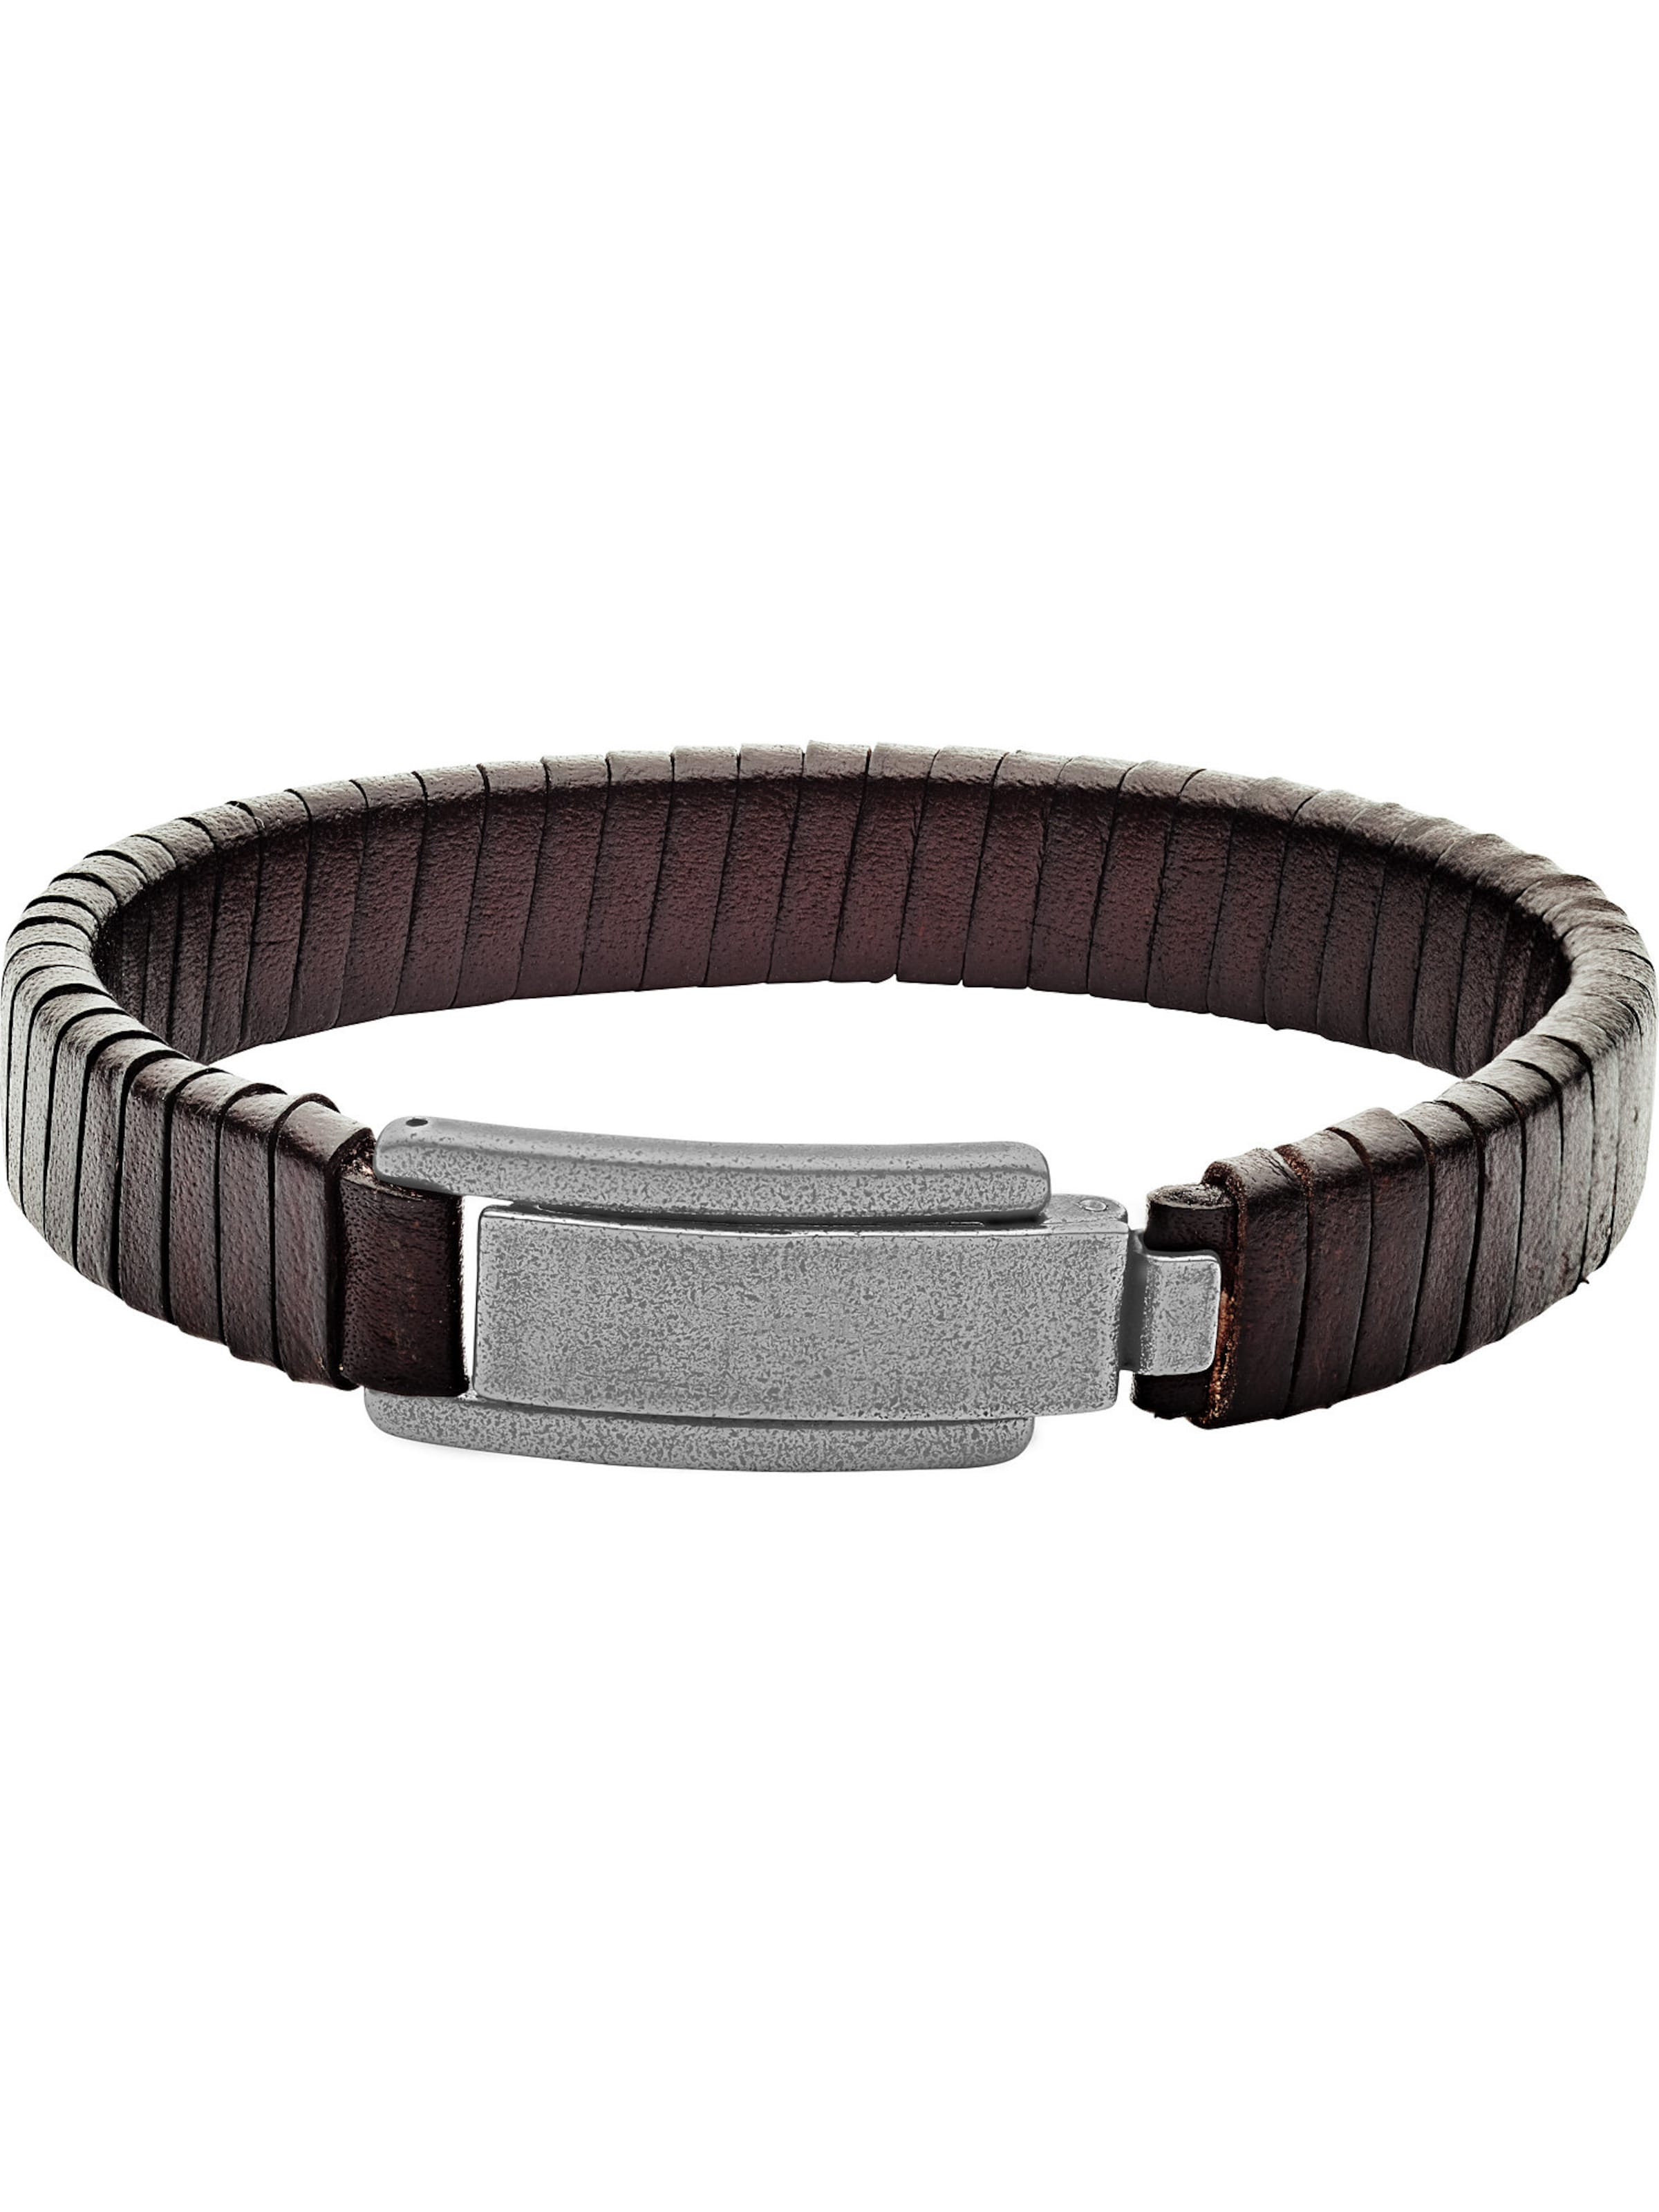 Armband Fossil 'jf03105793' Dunkelbraun 'jf03105793' In Fossil Armband In srthdQ